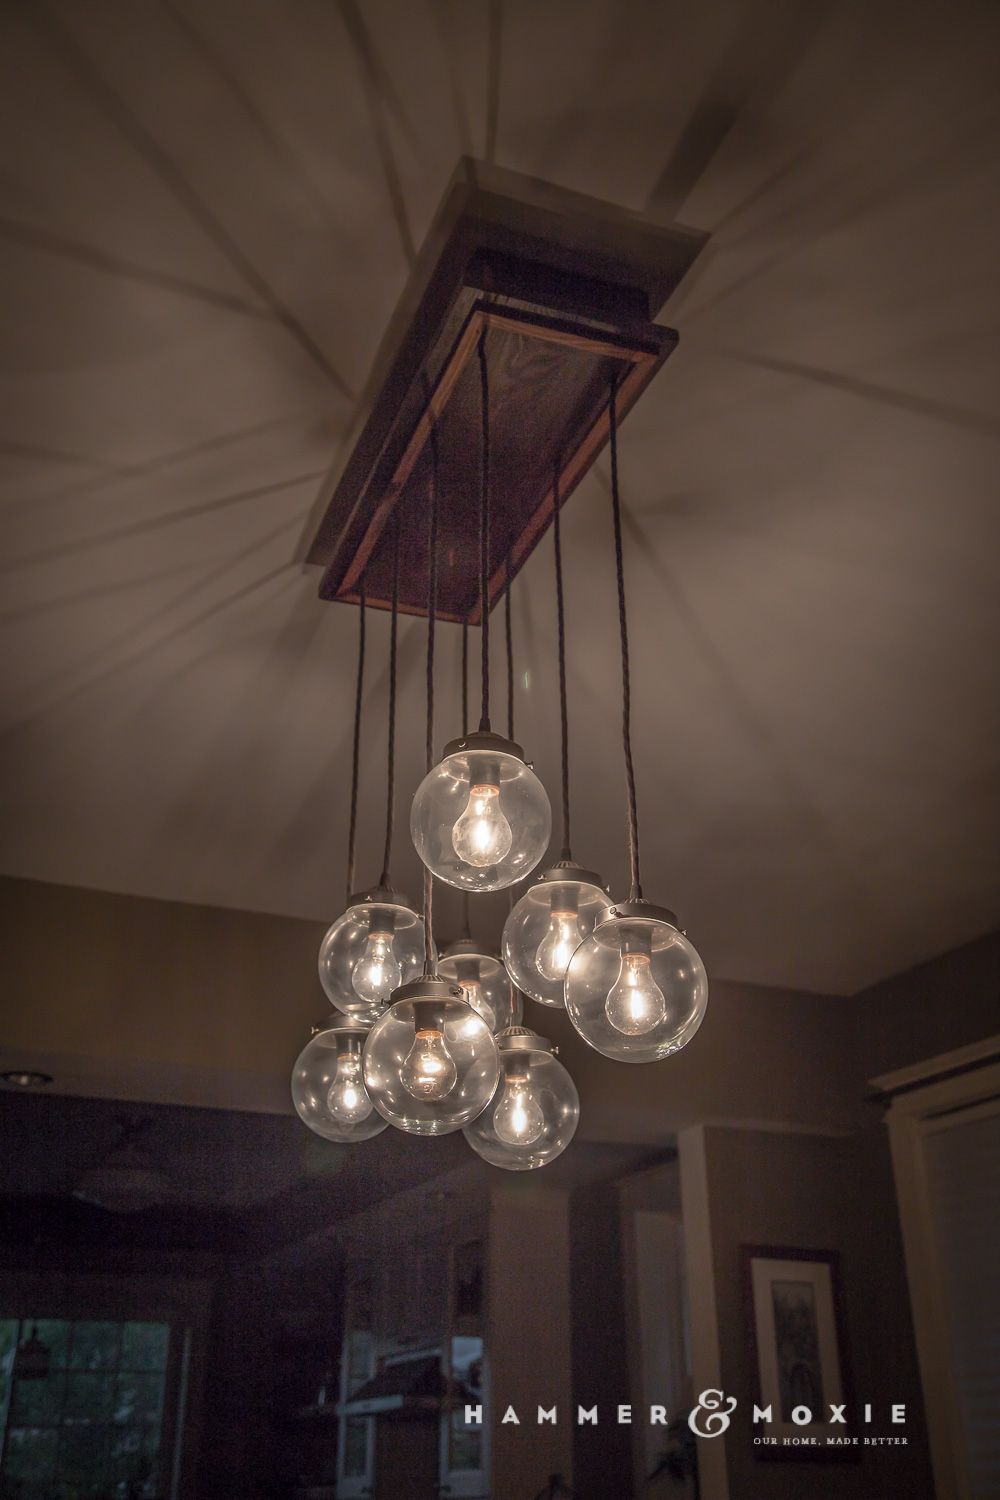 medium resolution of homemade chandelier with irregularly hung globes cotton covered wiring and a ceiling box made of reclaimed wood hammer moxie